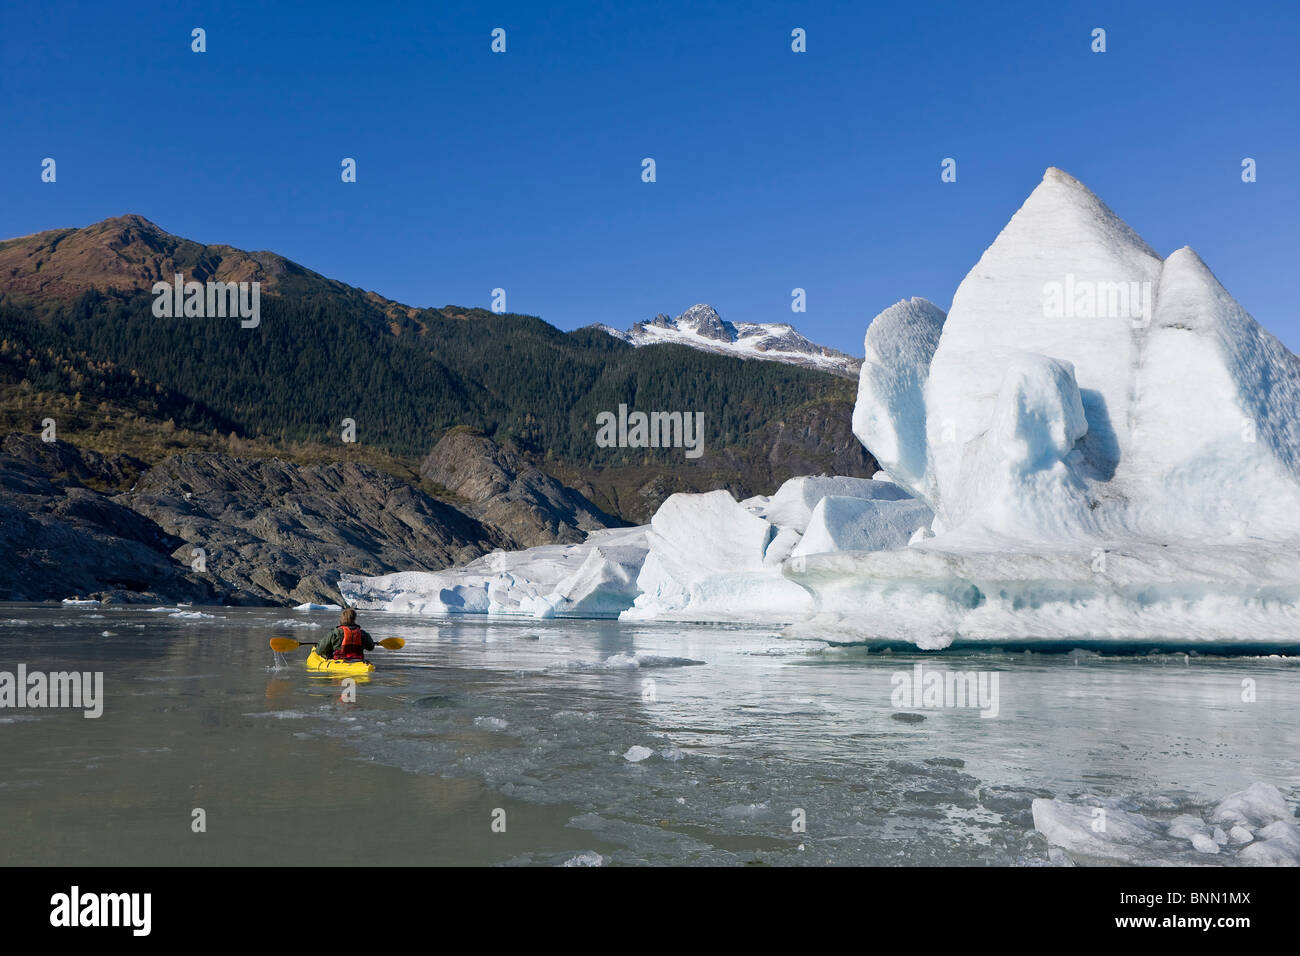 A kayaker paddles the icy waters of Mendenhall Lake with Mendenhall Glacier and Mt. Stroller White in the background, - Stock Image